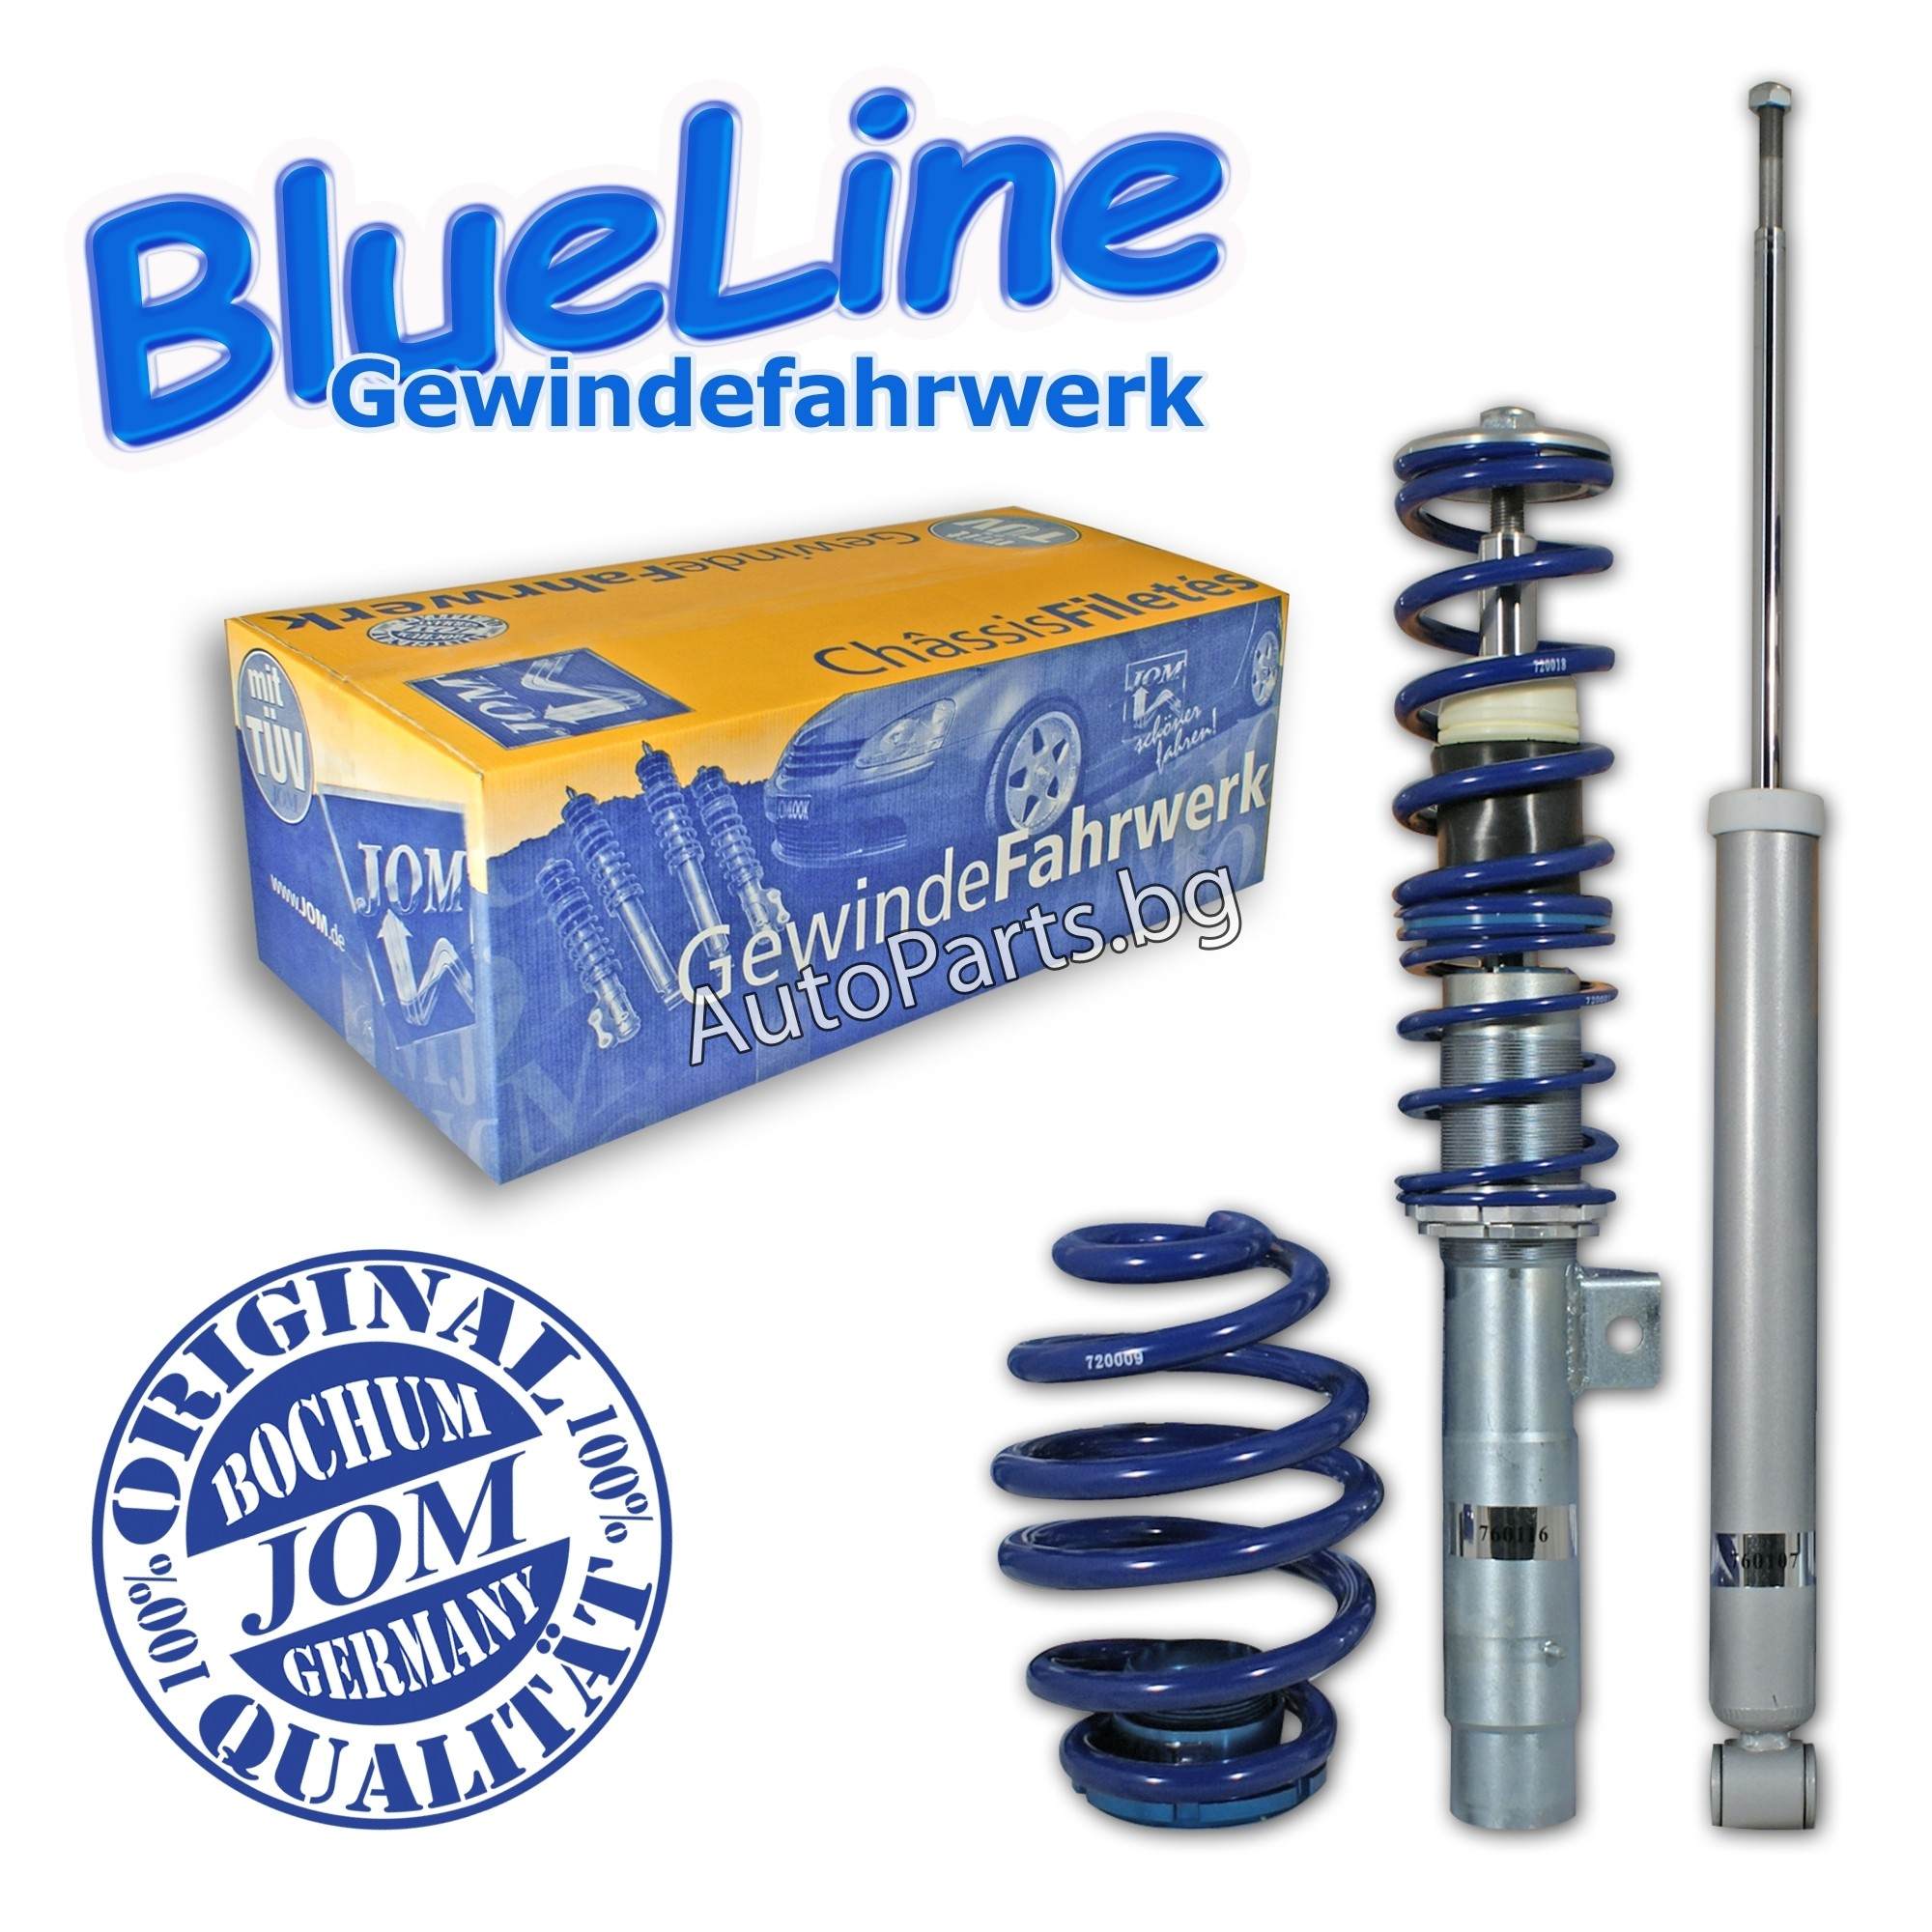 Регулируемо окачване Coilovers за BMW 3Ser (E46) SDN/SW 02-